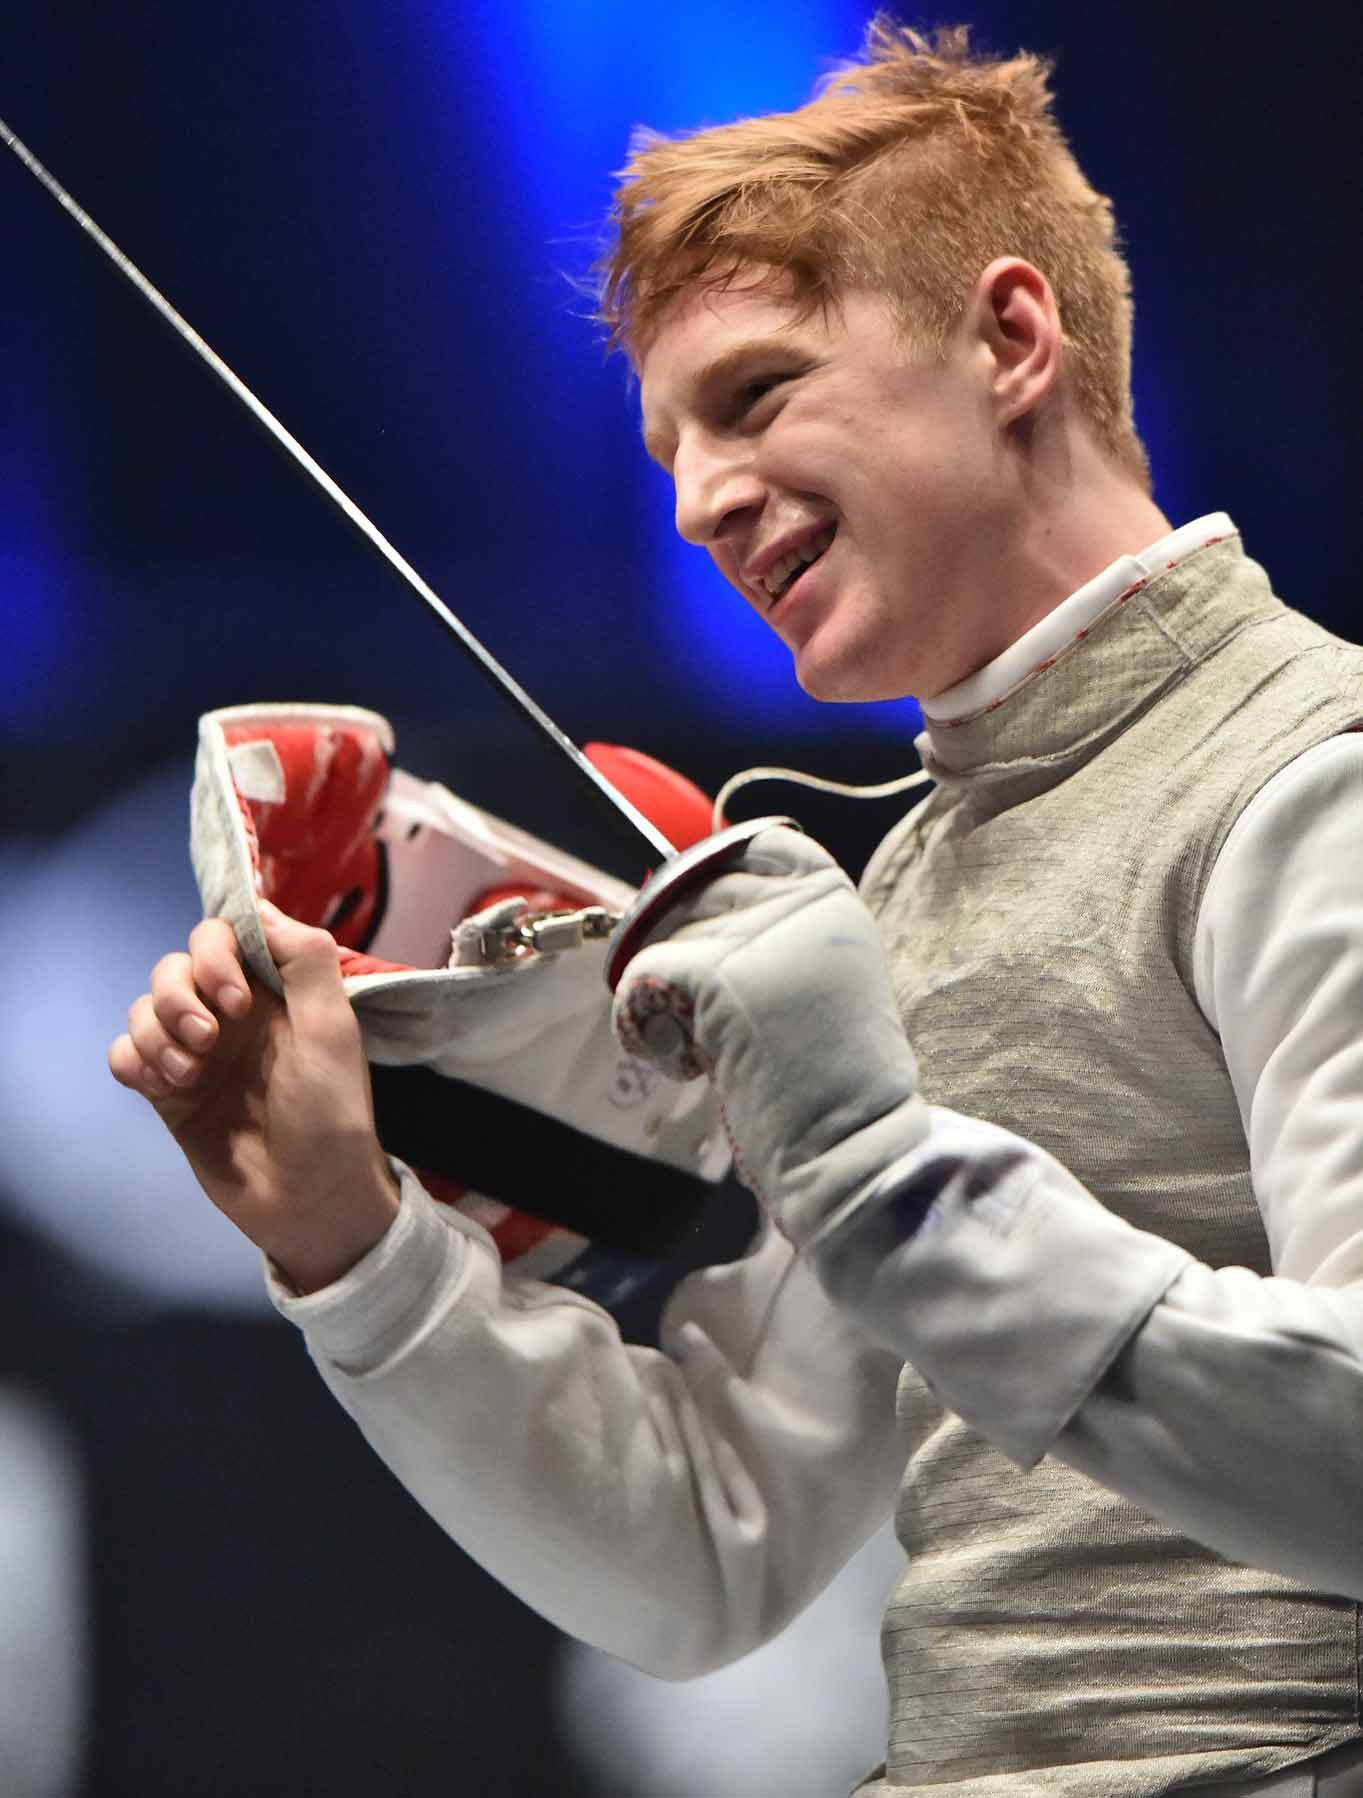 The Face Of Fencing Olympian Race Imboden On Bringing The